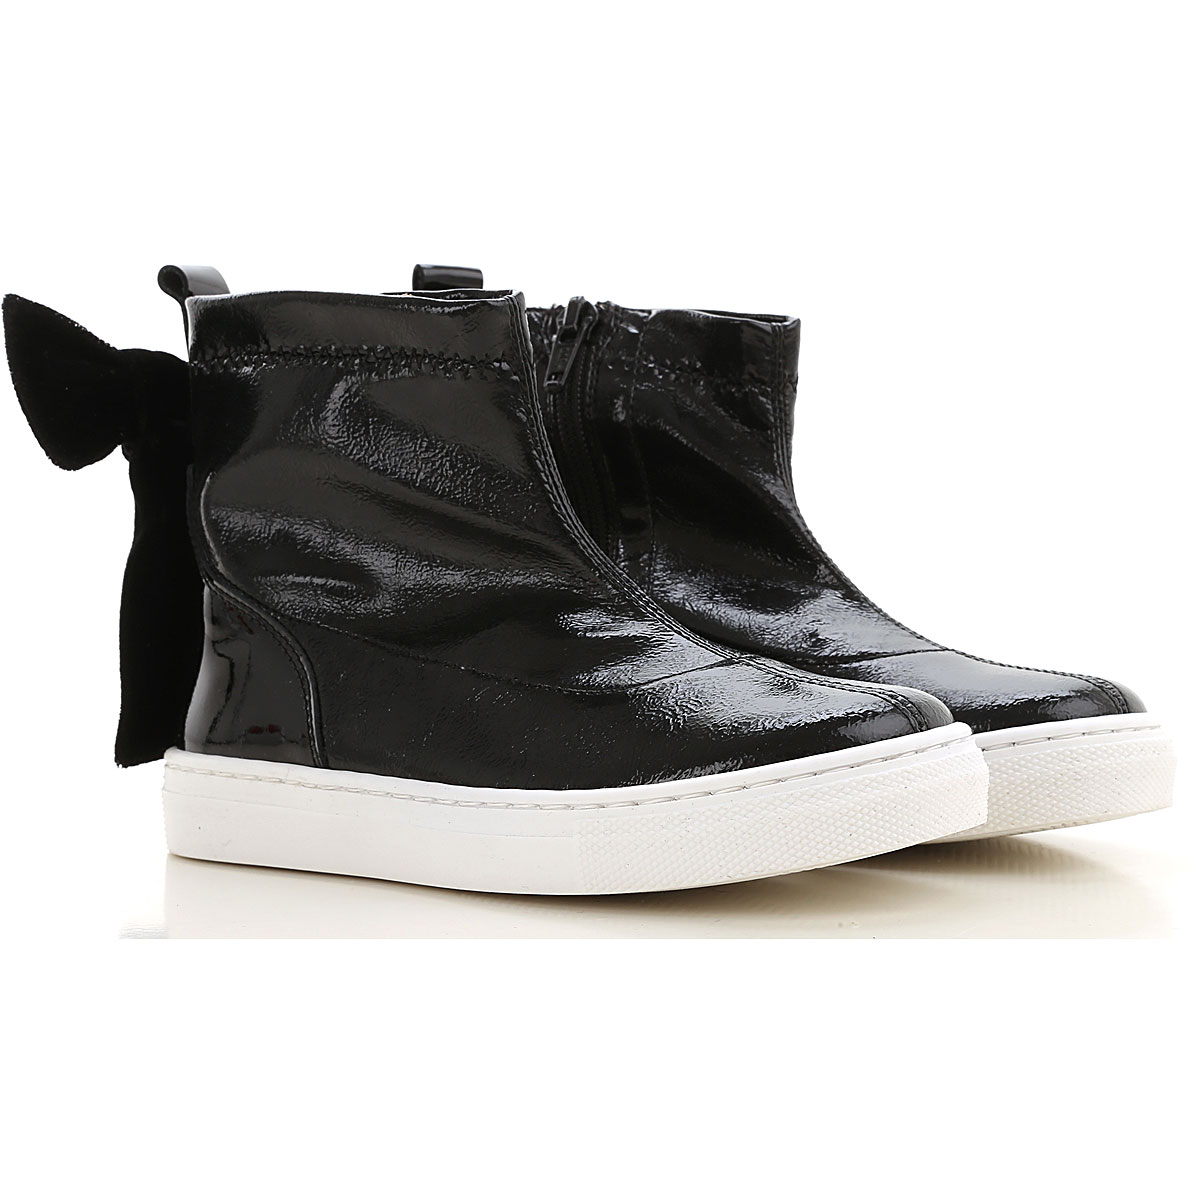 Florens Kids Shoes for Girls On Sale, Black, Leather, 2019, 20 21 22 23 24 25 26 27 28 29